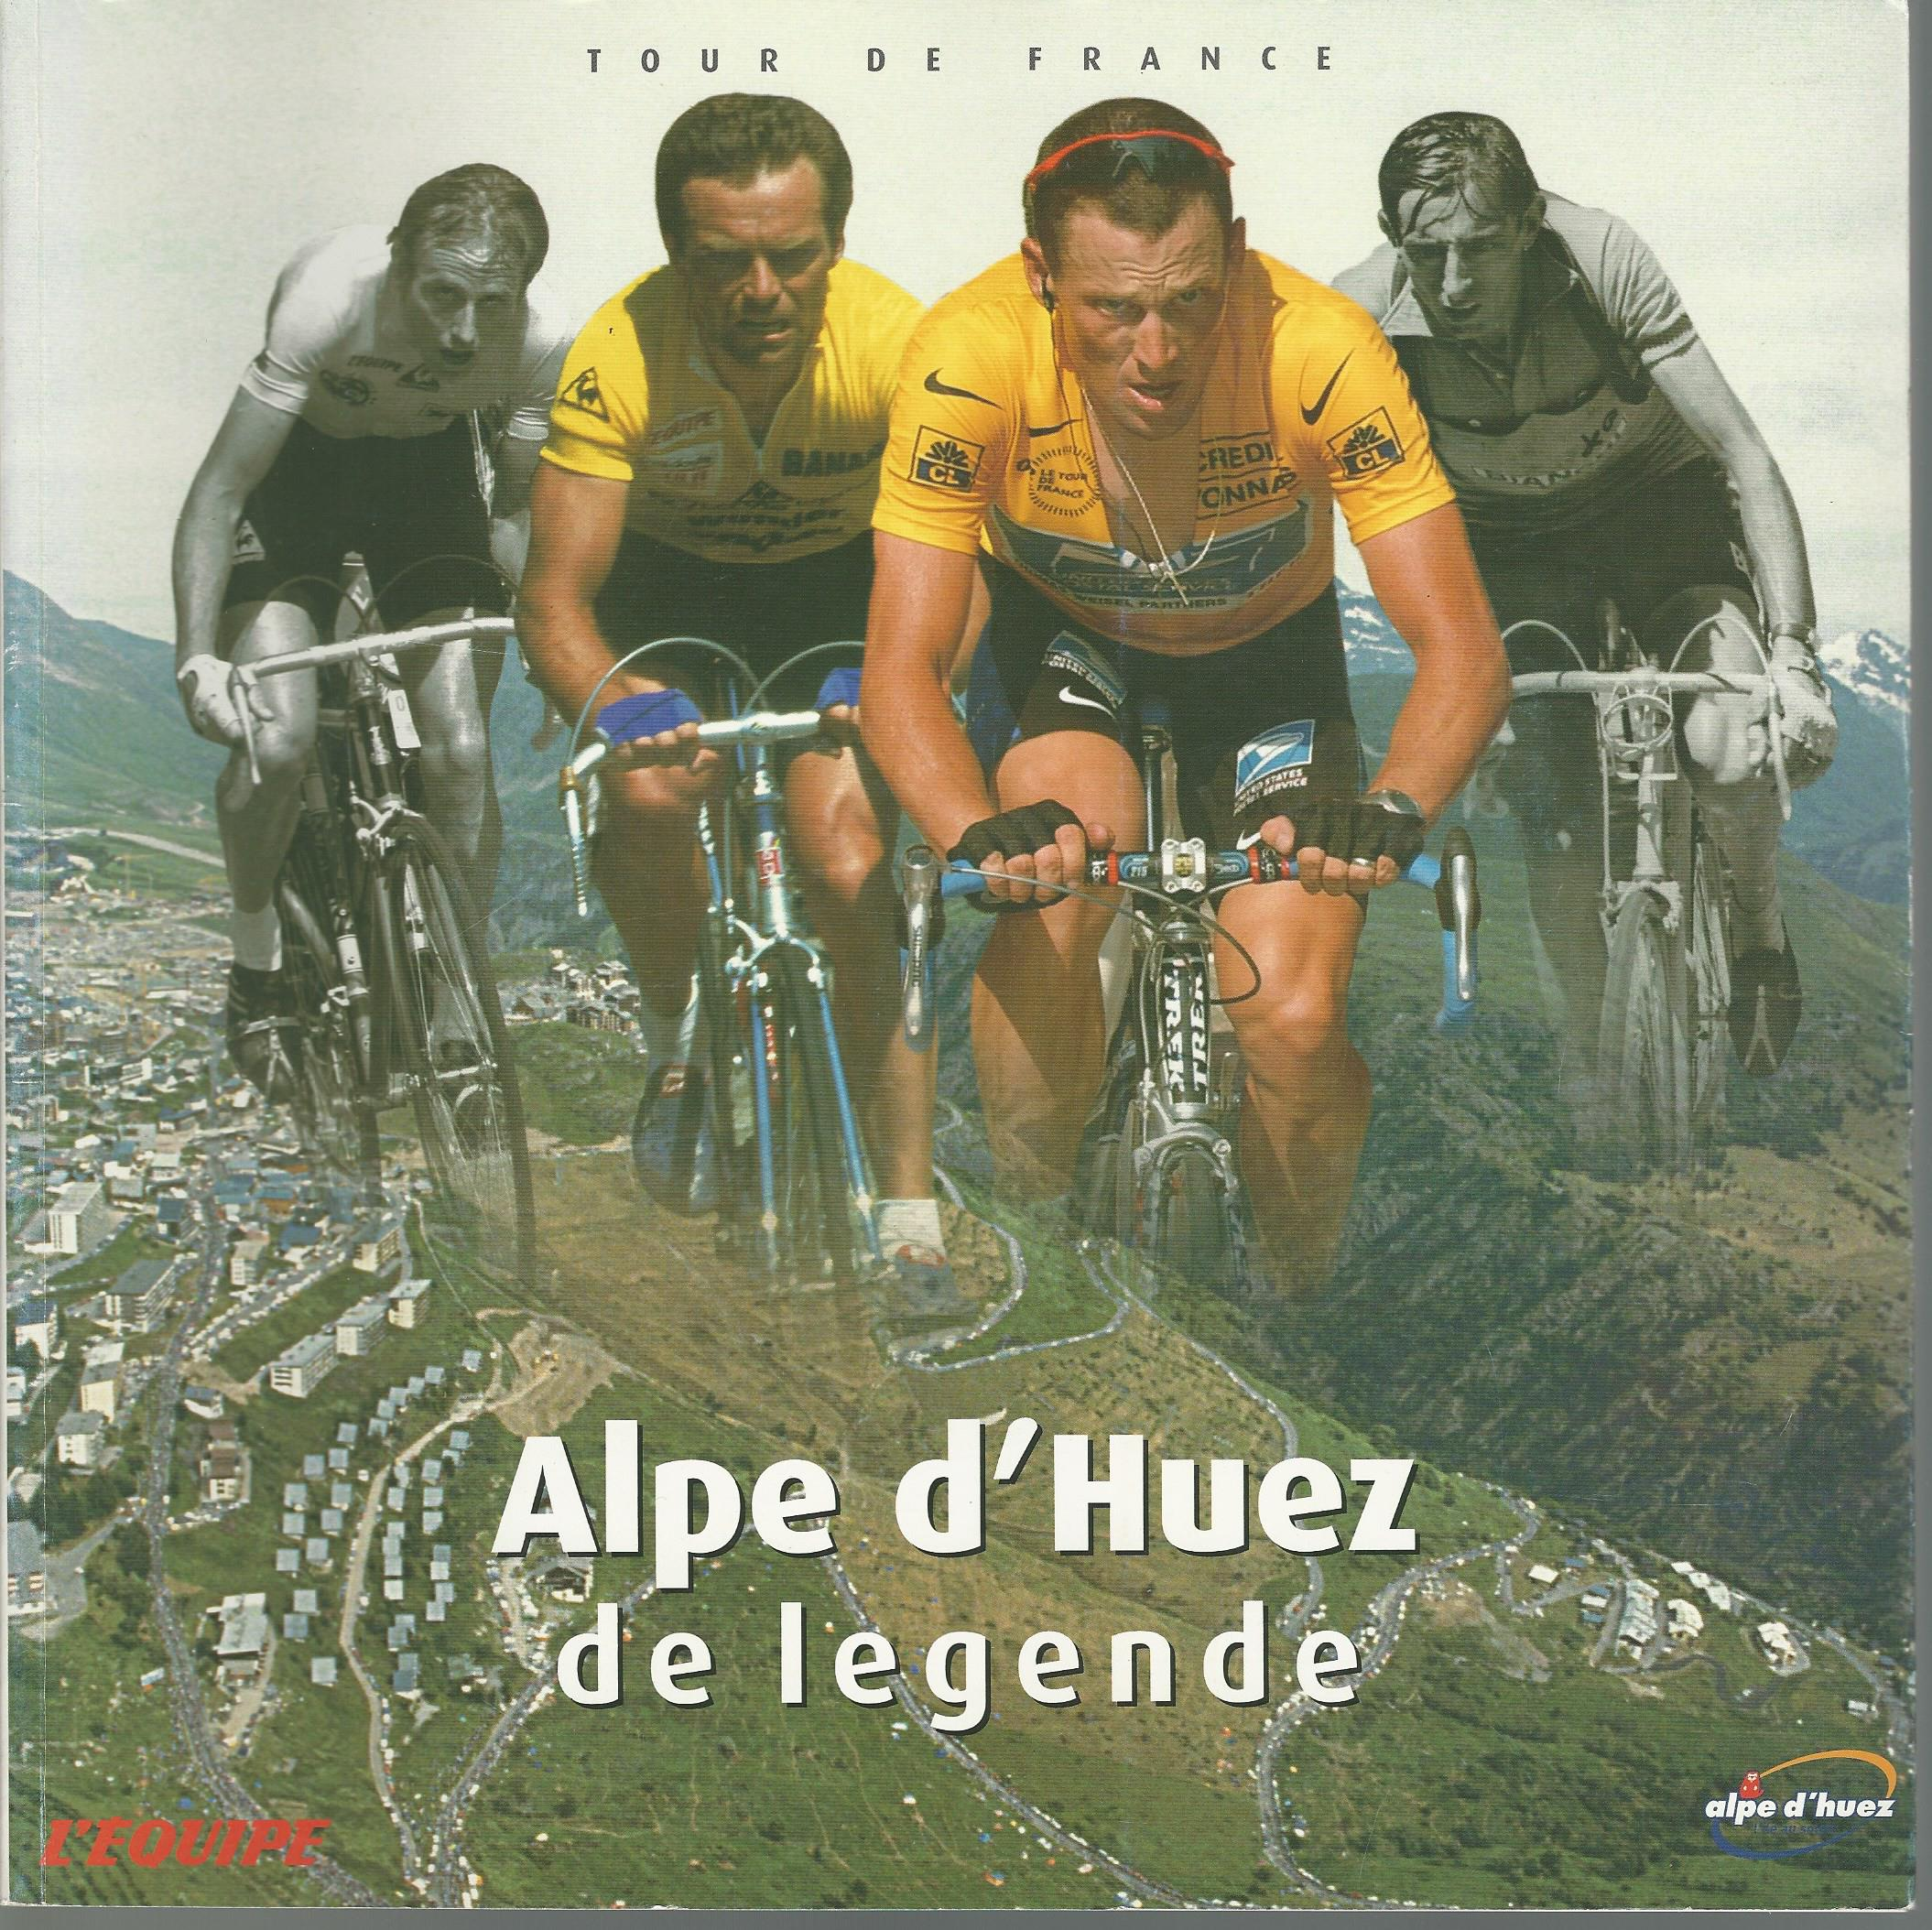 De legende van de Tour de France